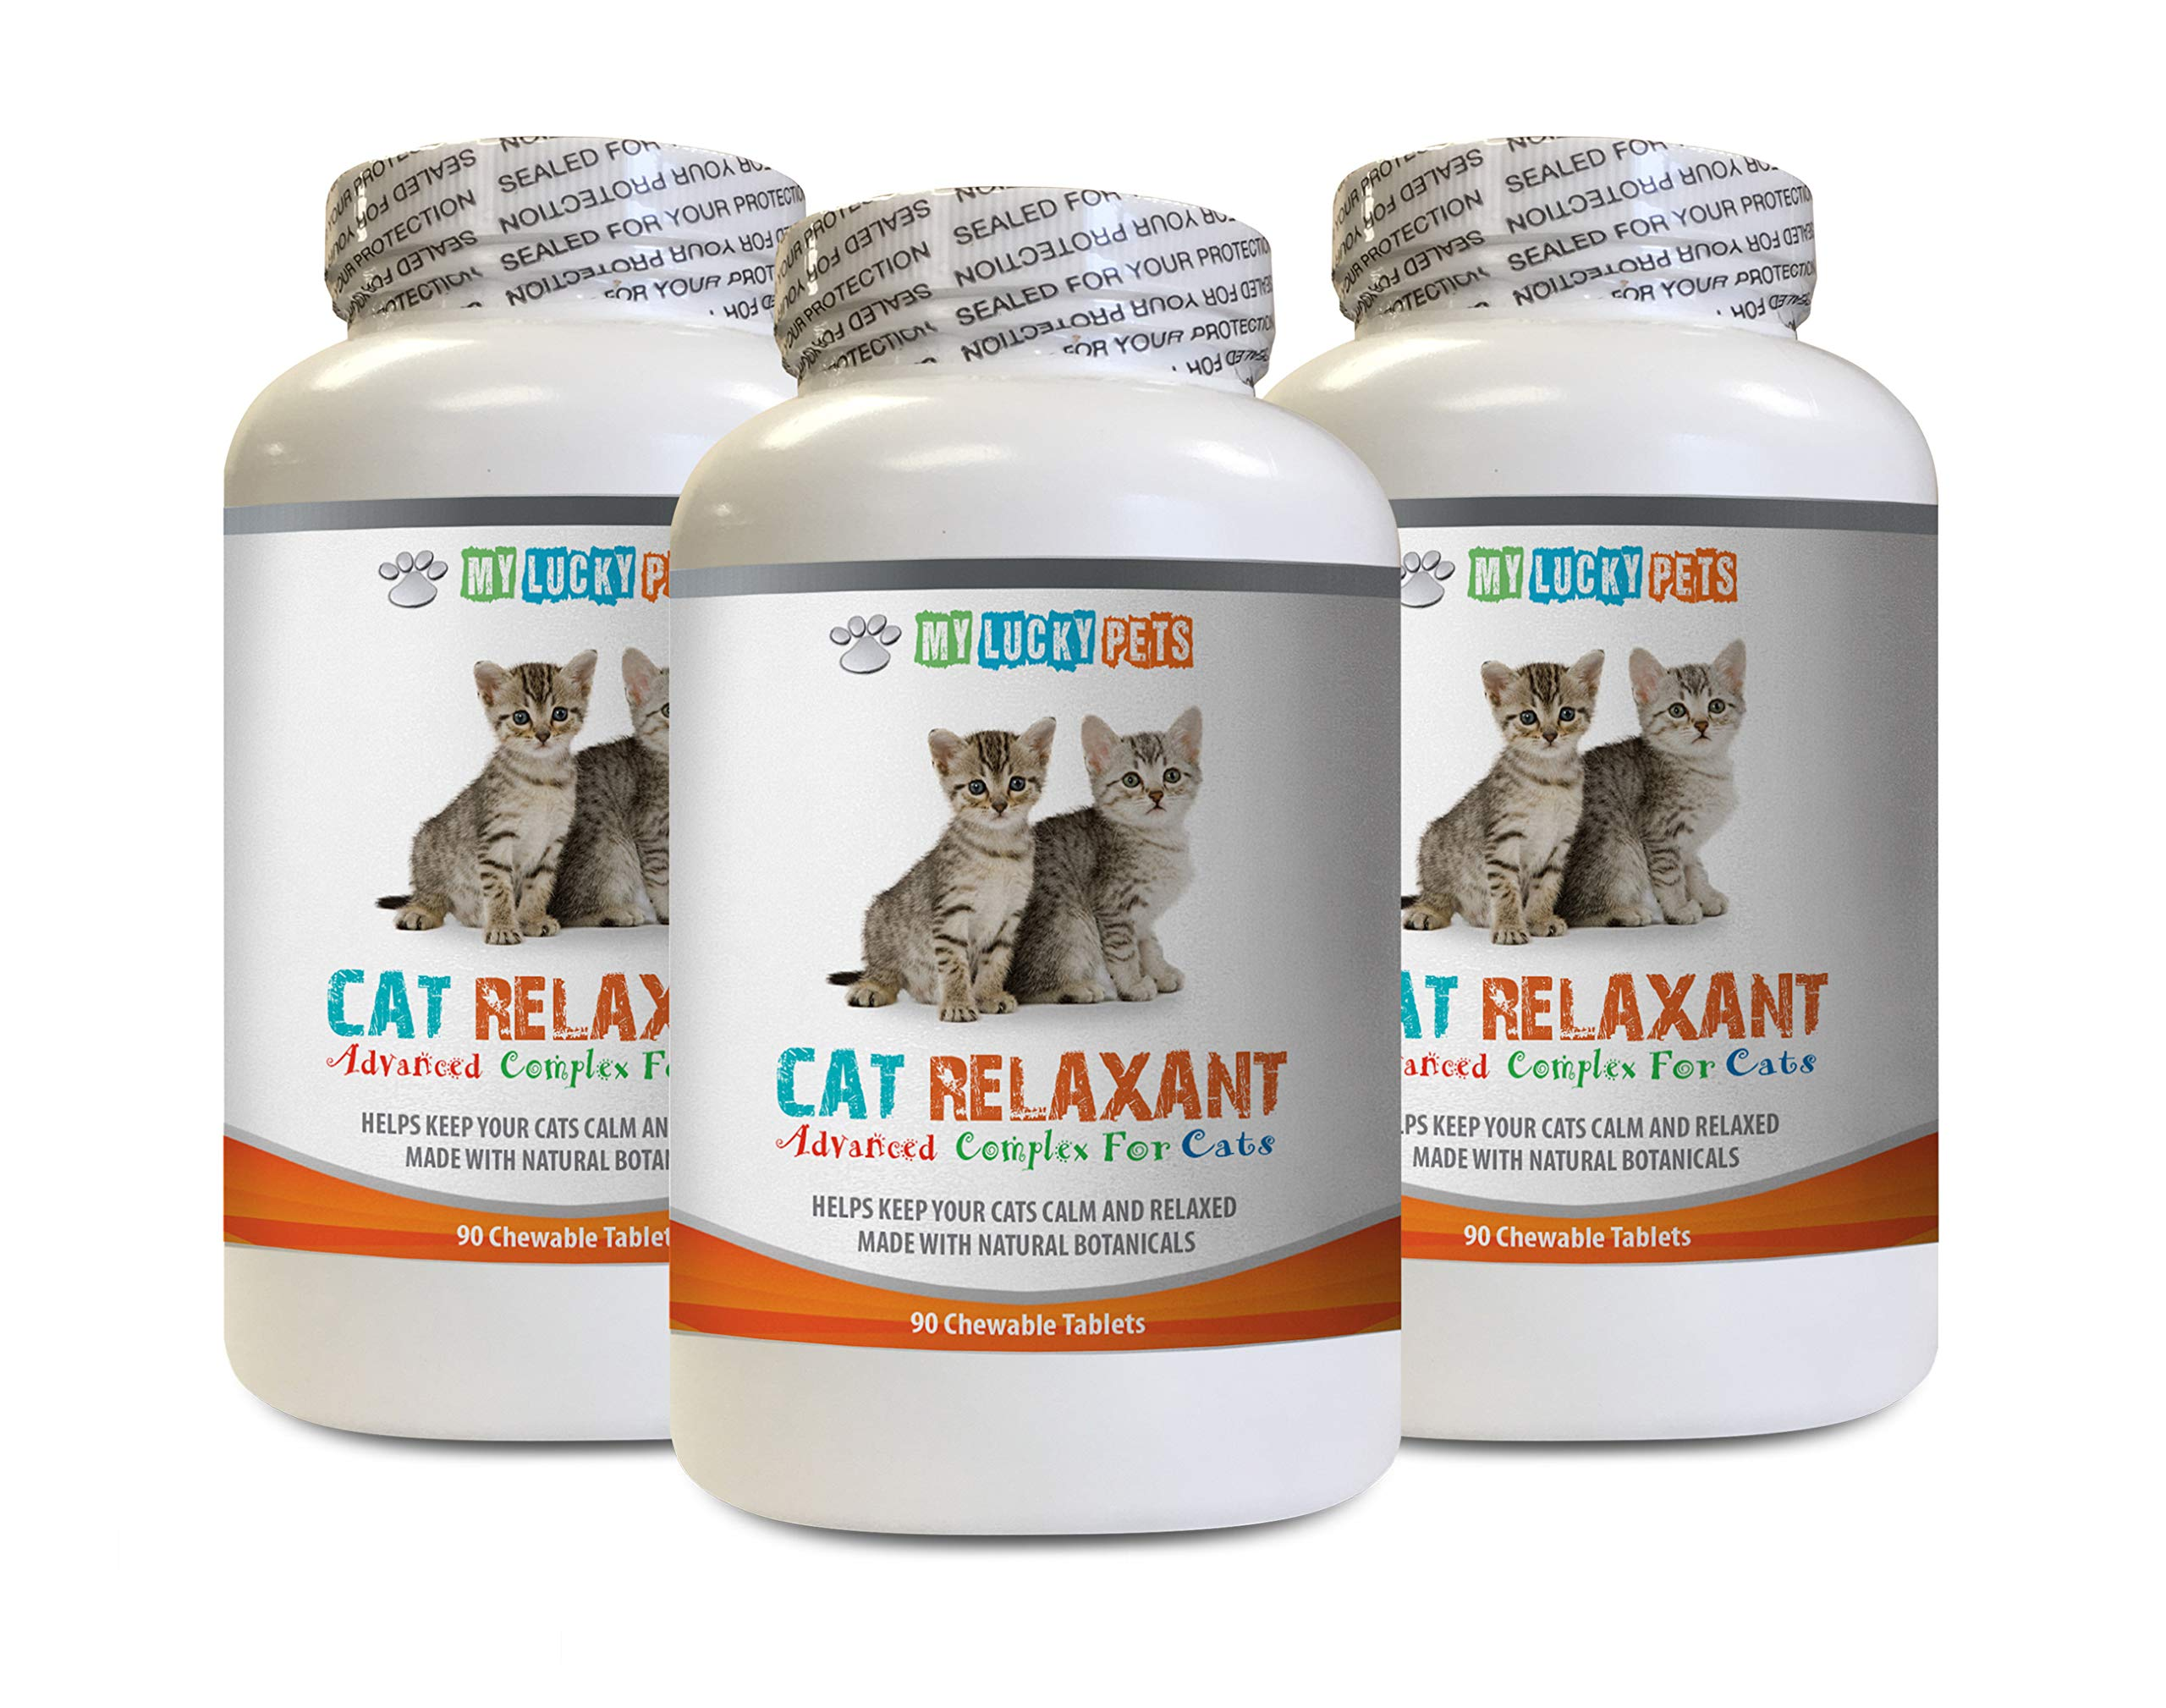 MY LUCKY PETS LLC cat Anxiety Supplement - Advanced Relaxant for Cats - Calms Down Your CAT - Anxiety Relief Complex - Chamomile for Cats - 3 Bottles (270 Chewable Tablets) by MY LUCKY PETS LLC